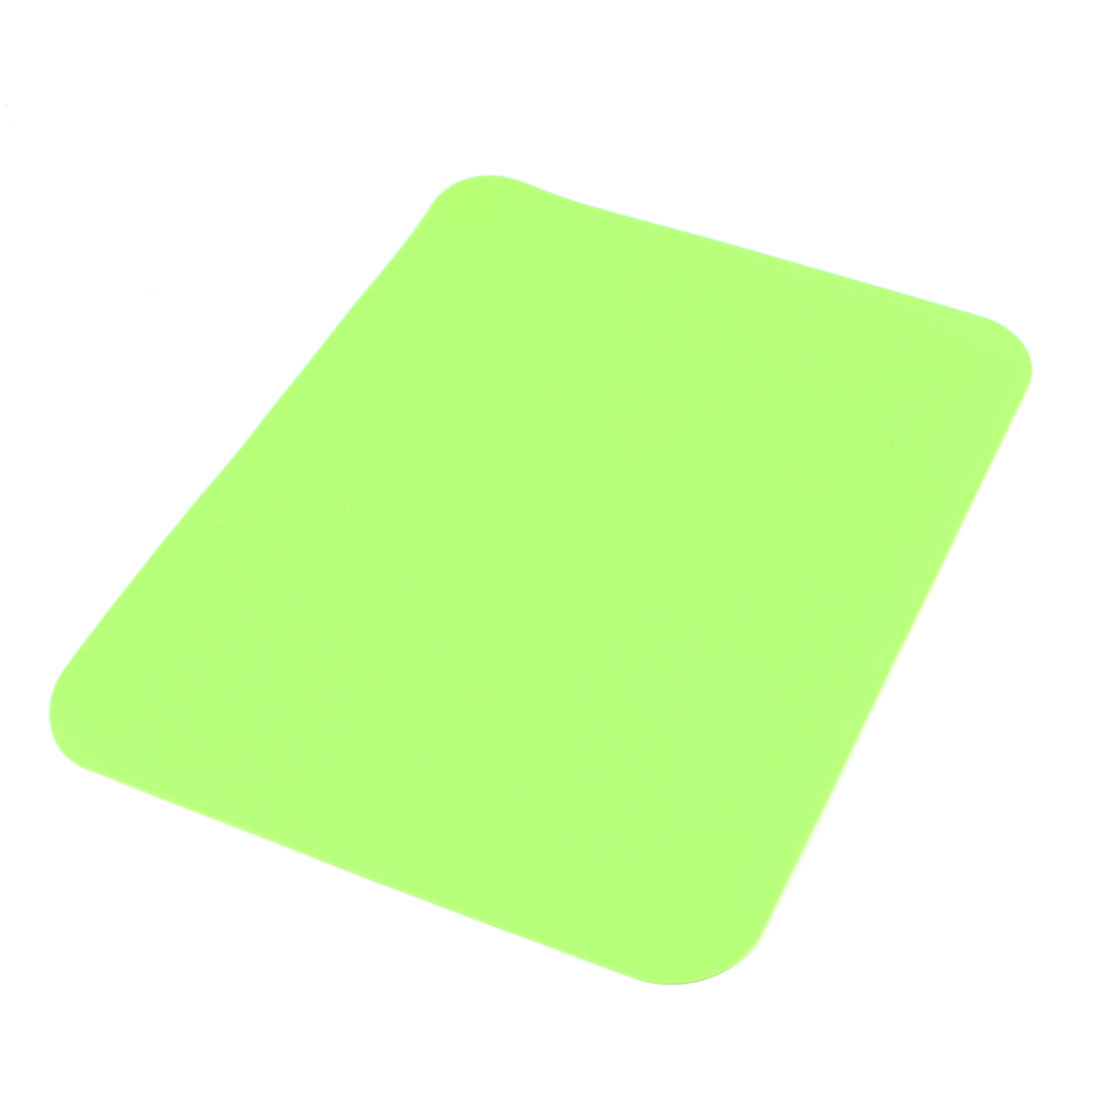 Soft Silicone Antislip Mouse Pad Mat Green for Notebook Computer